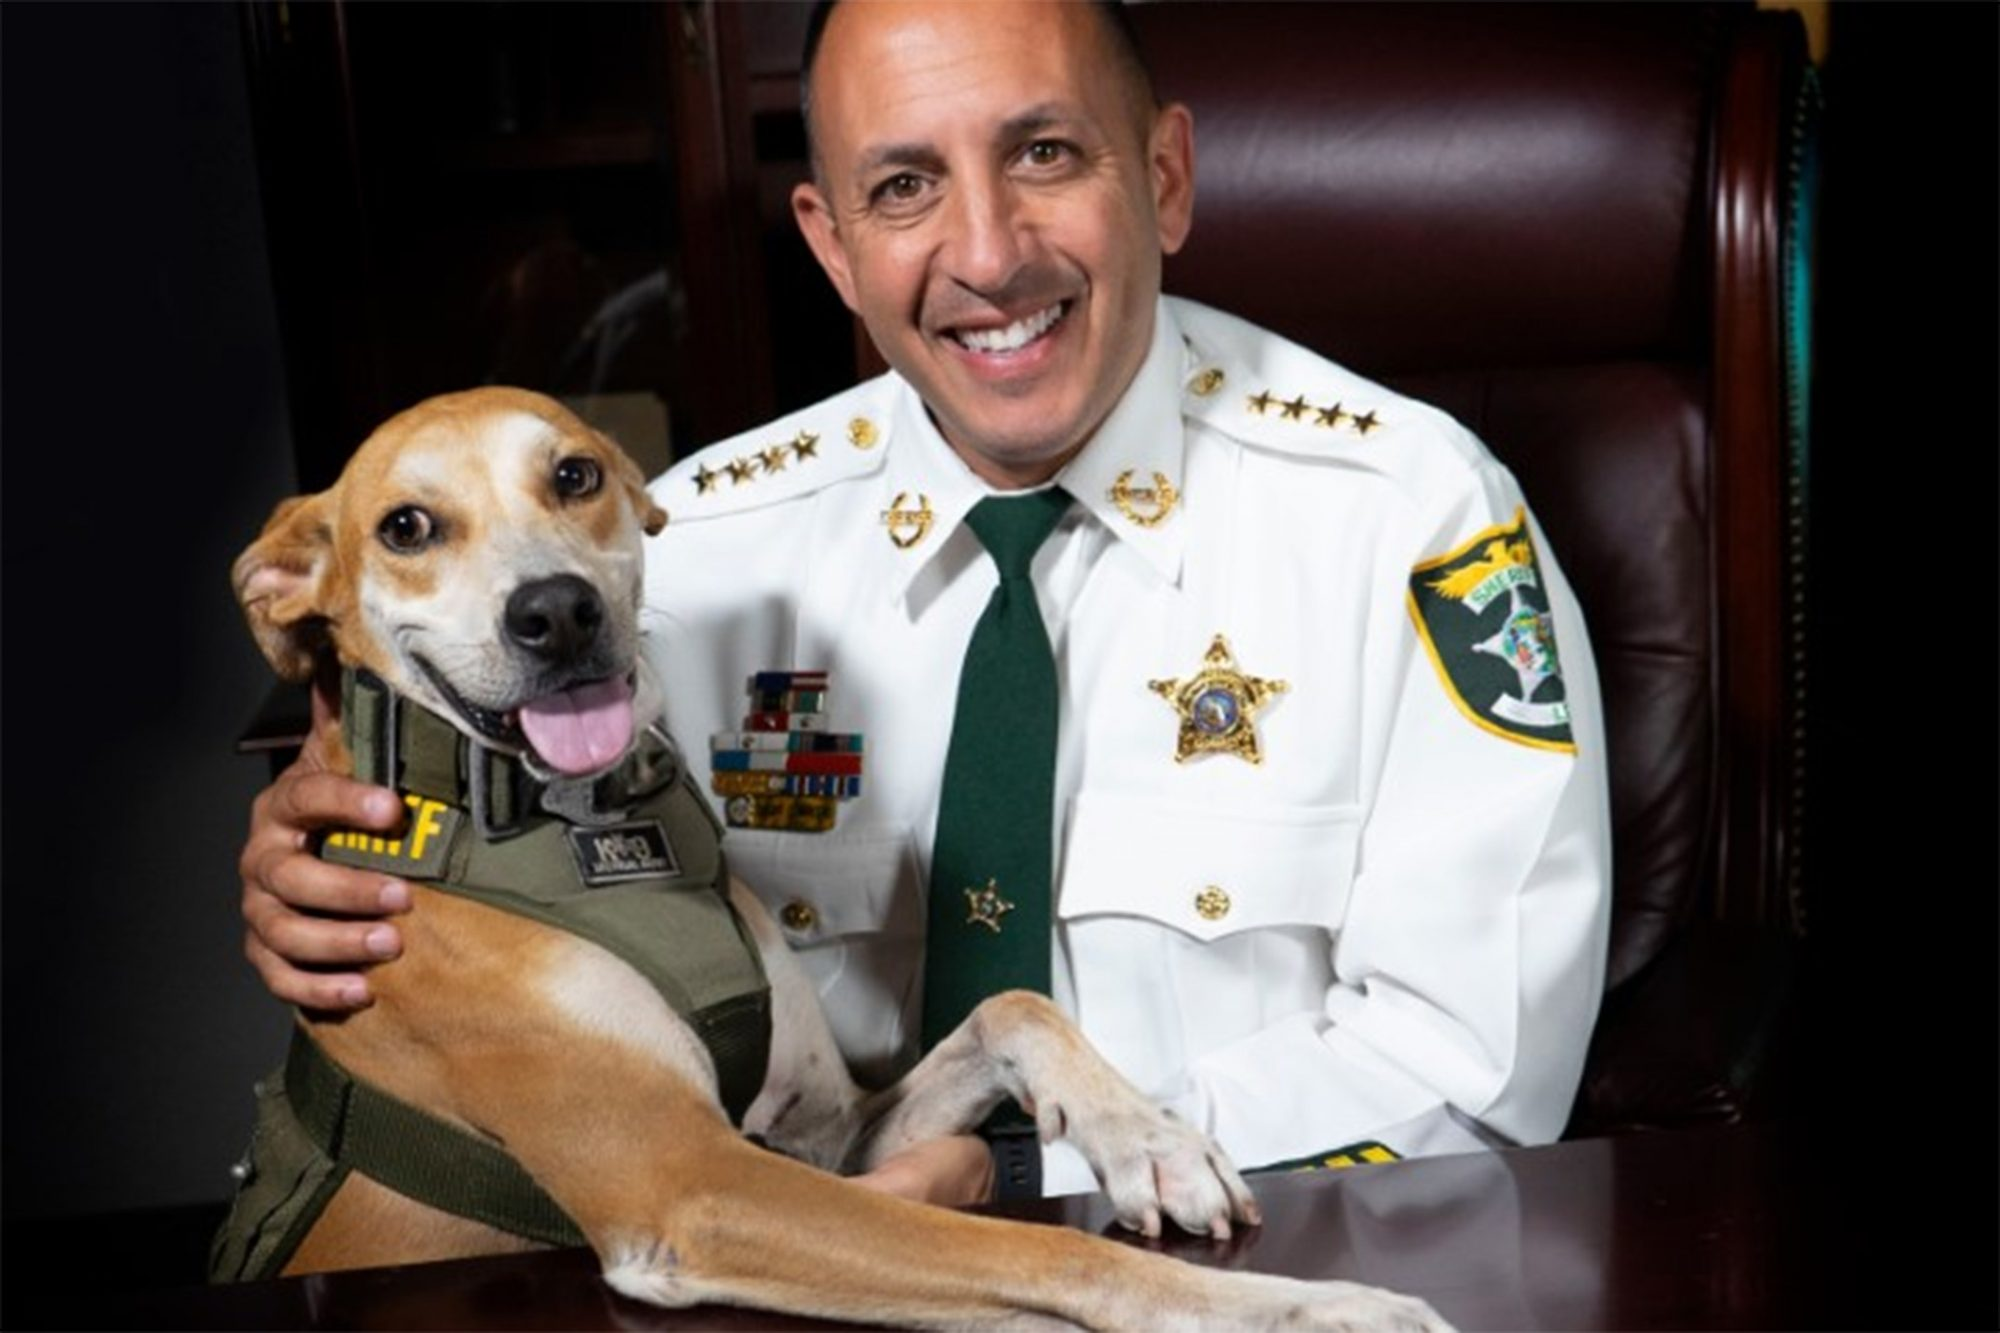 Deputy Chance, shelter dog of the year posing with Sheriff